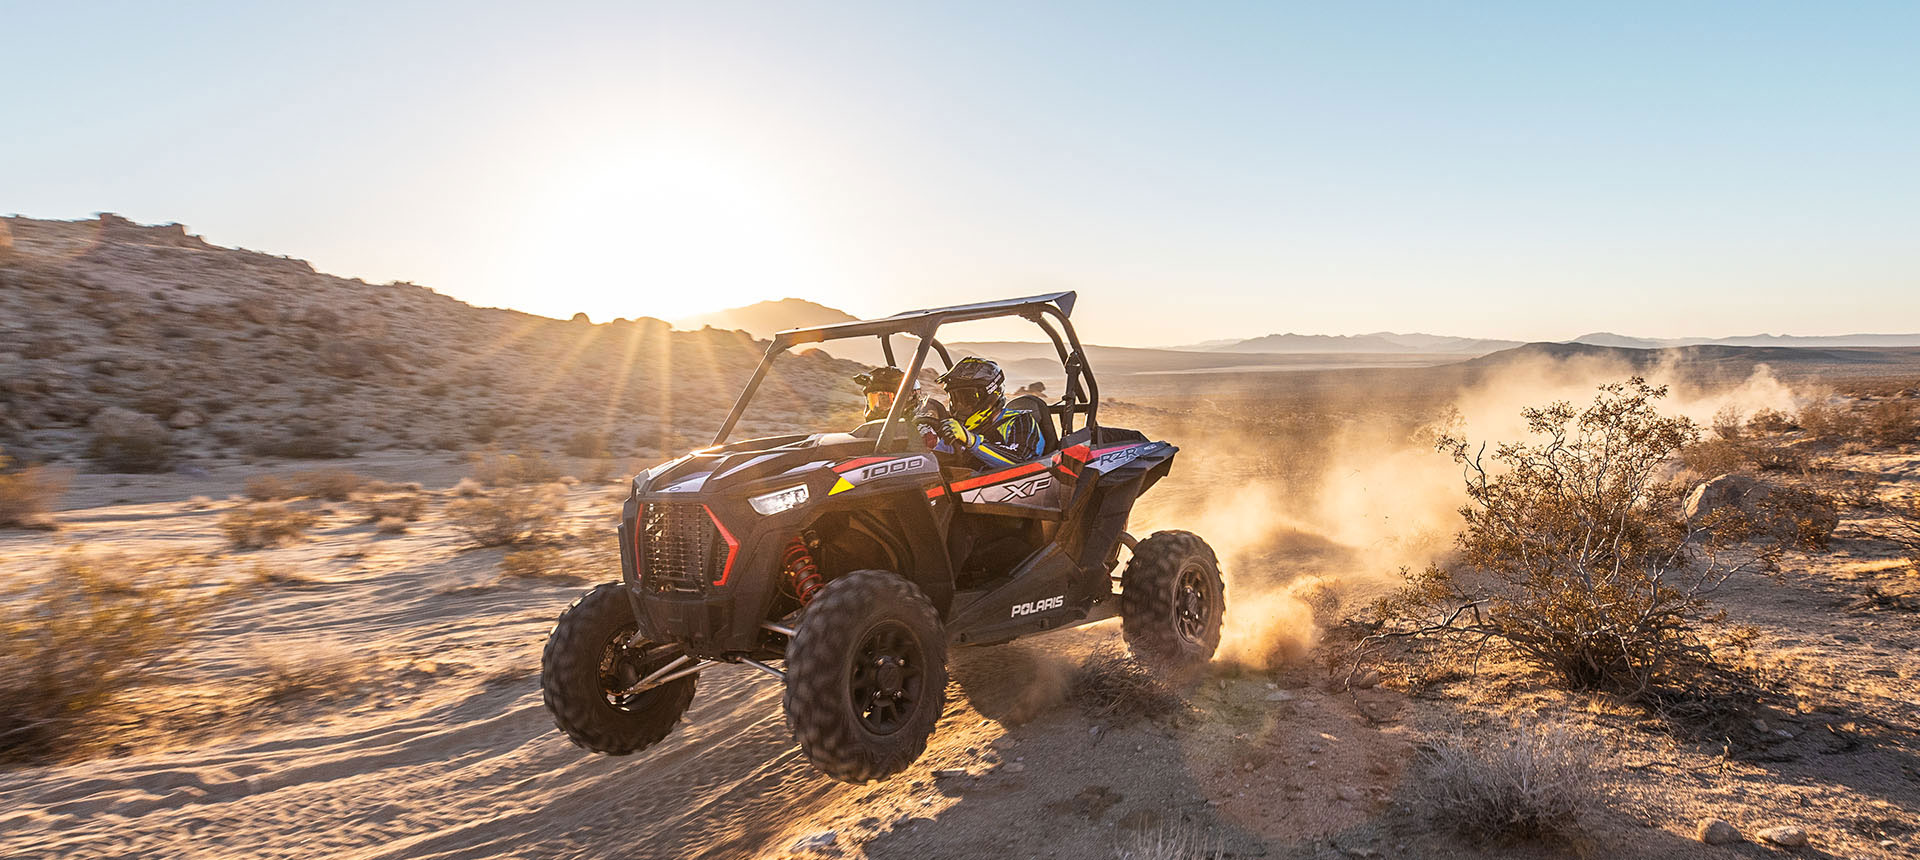 2019 Polaris RZR XP 1000 in Wichita Falls, Texas